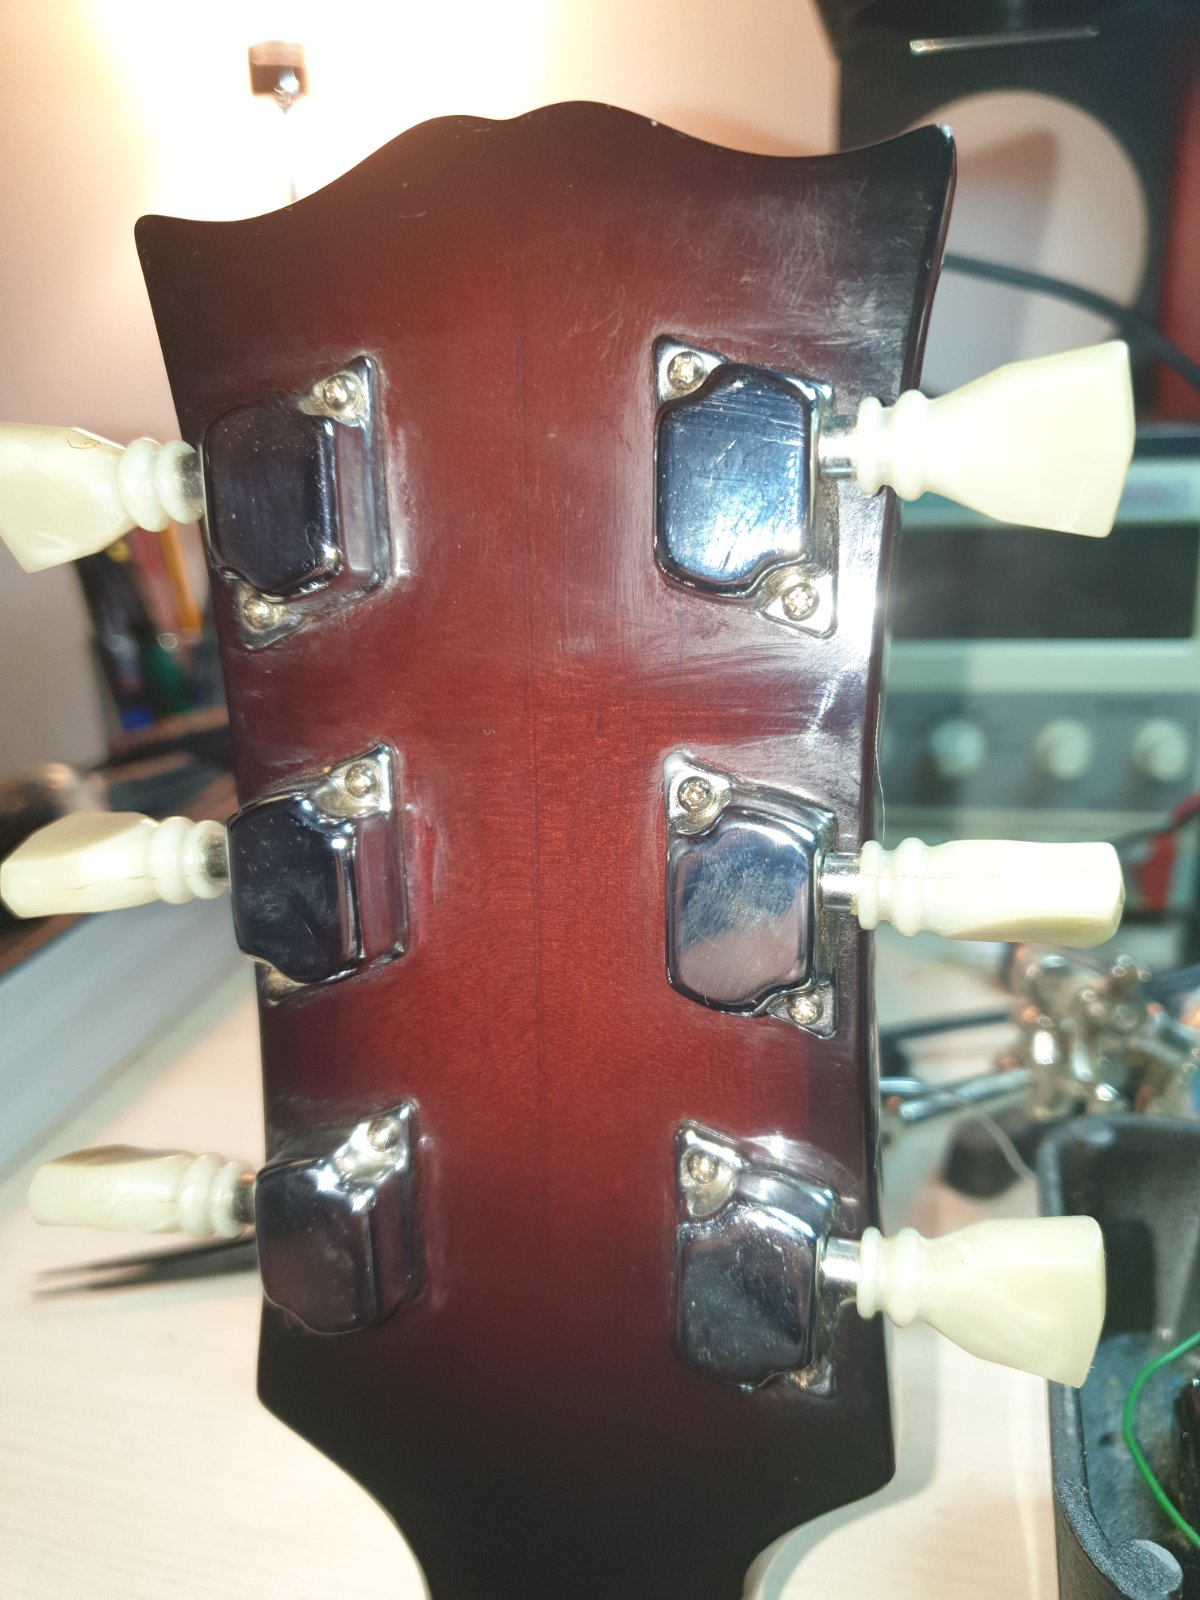 Japanese 175 type - is there something off?-03-headstock-jpg